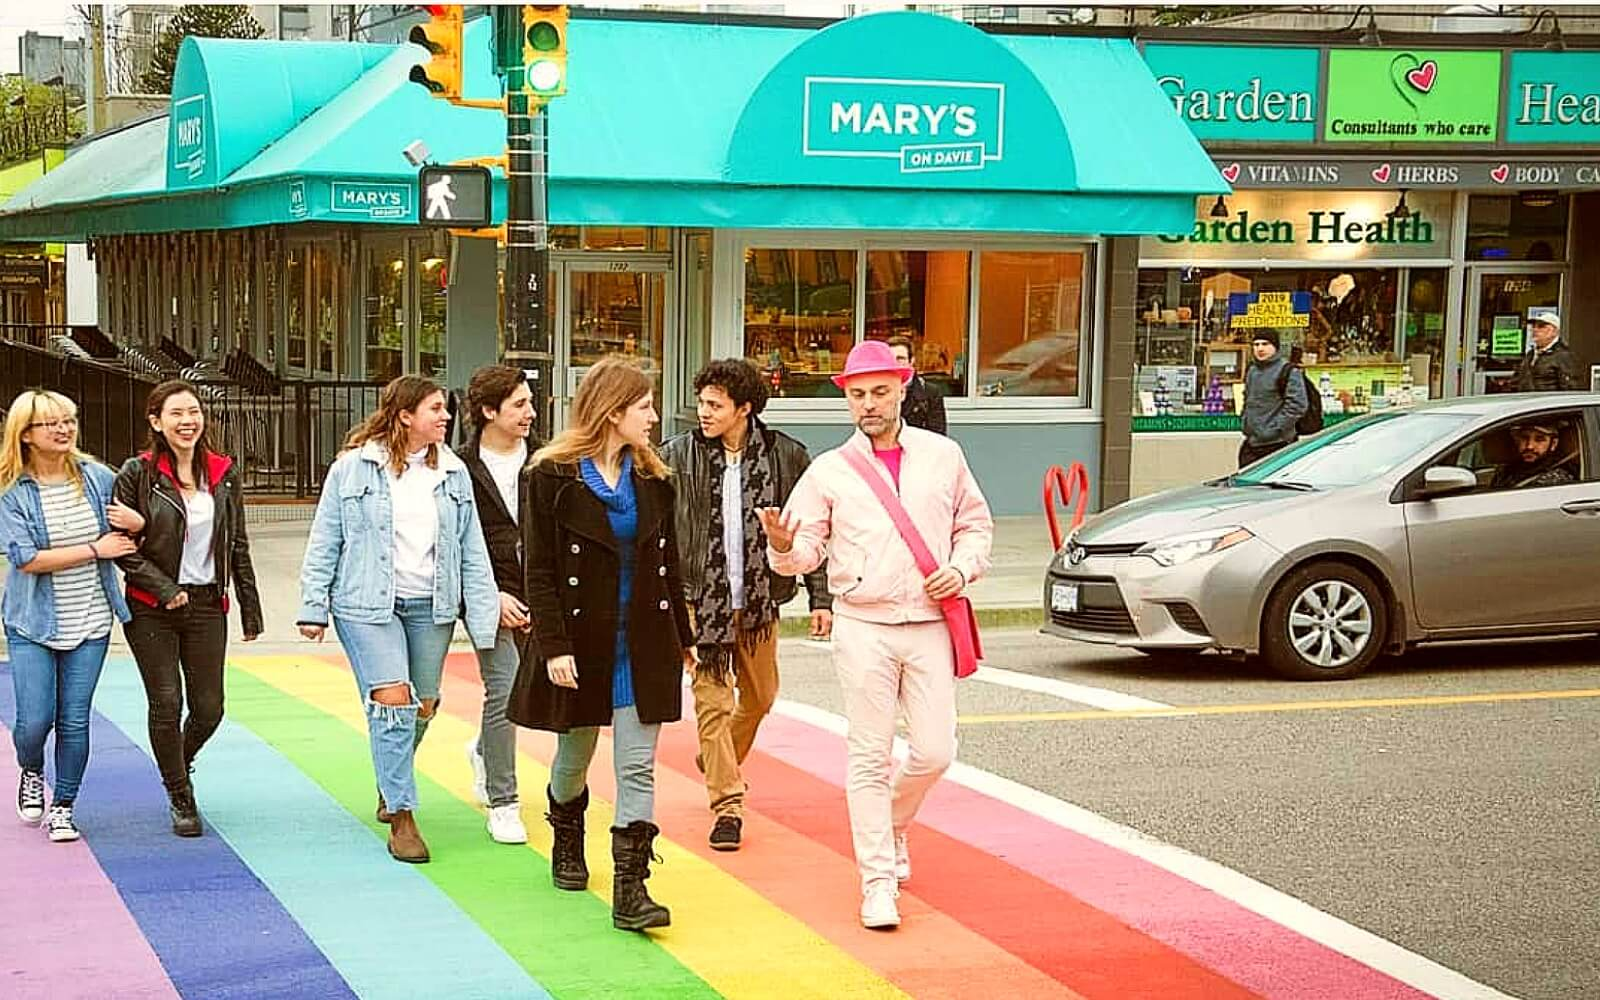 Customers on the Really Gay Walking Tour